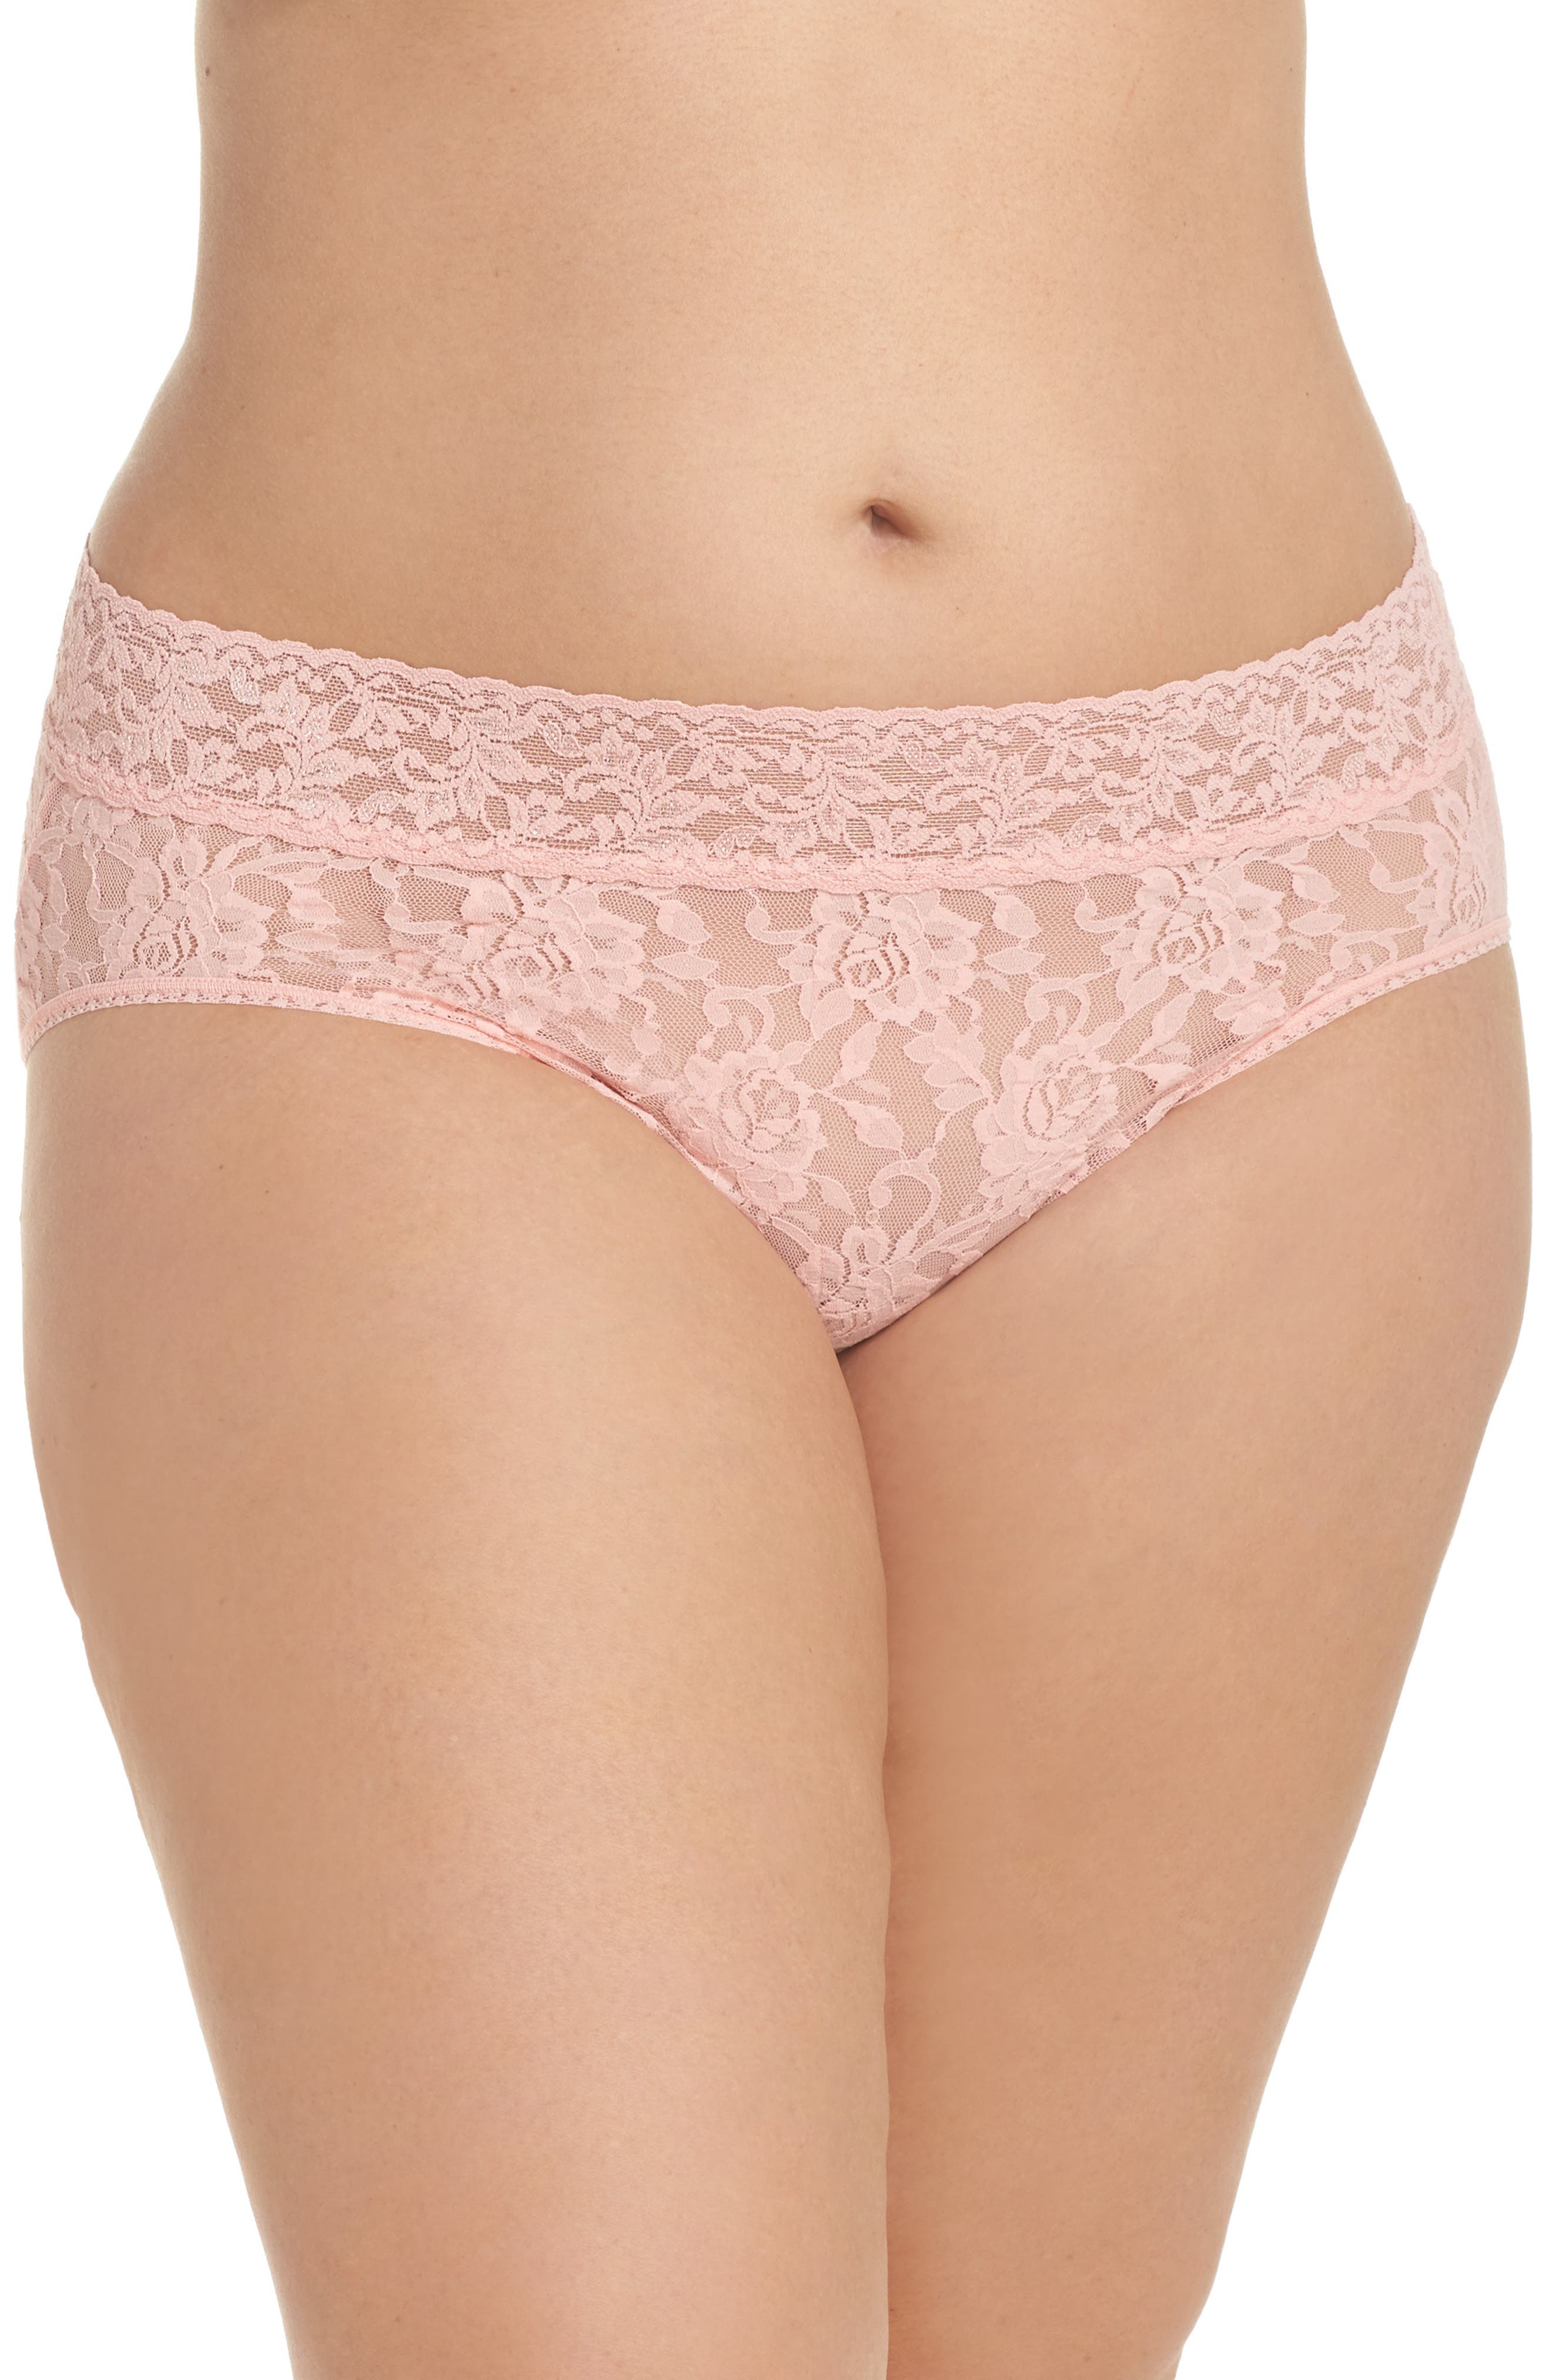 Alternate Image 1 Selected - Hanky Panky French Briefs (Plus Size)